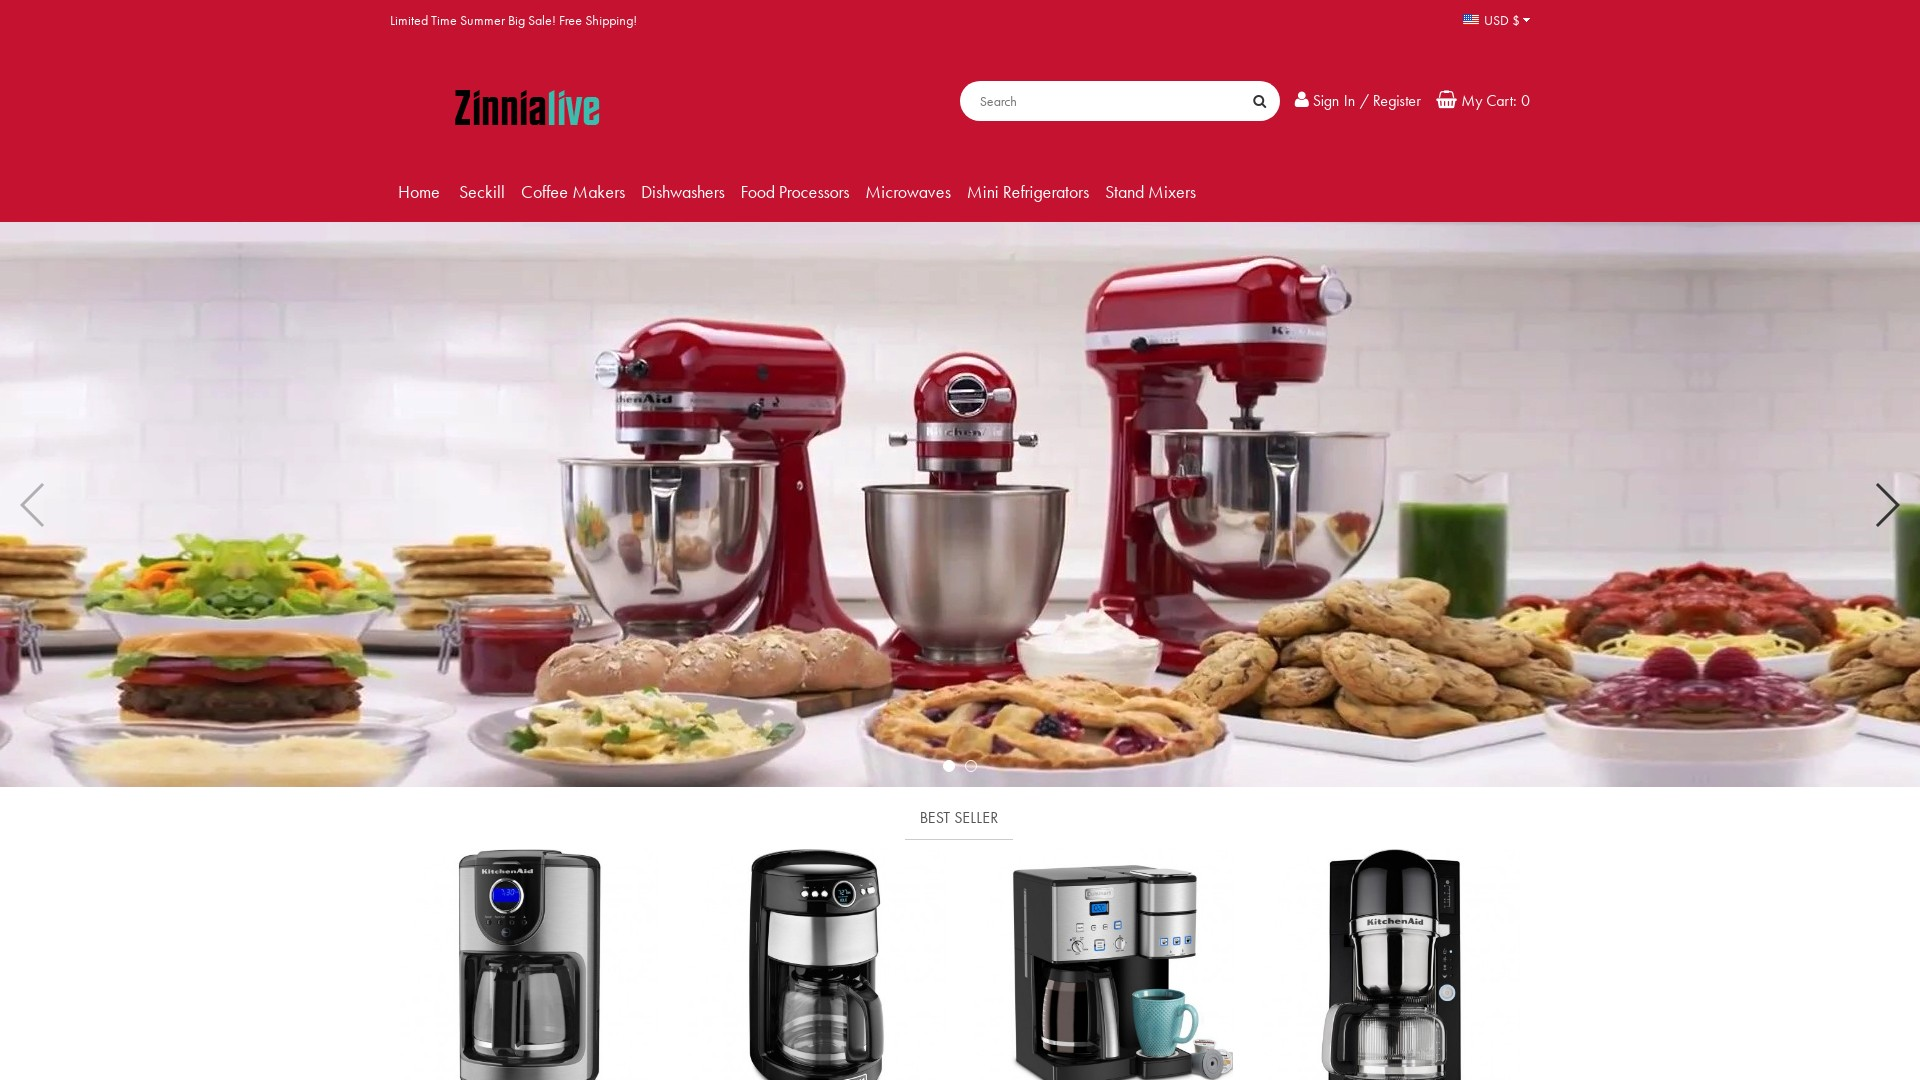 Is Zinnialive.com a Scam? Review of the Kitchen Store